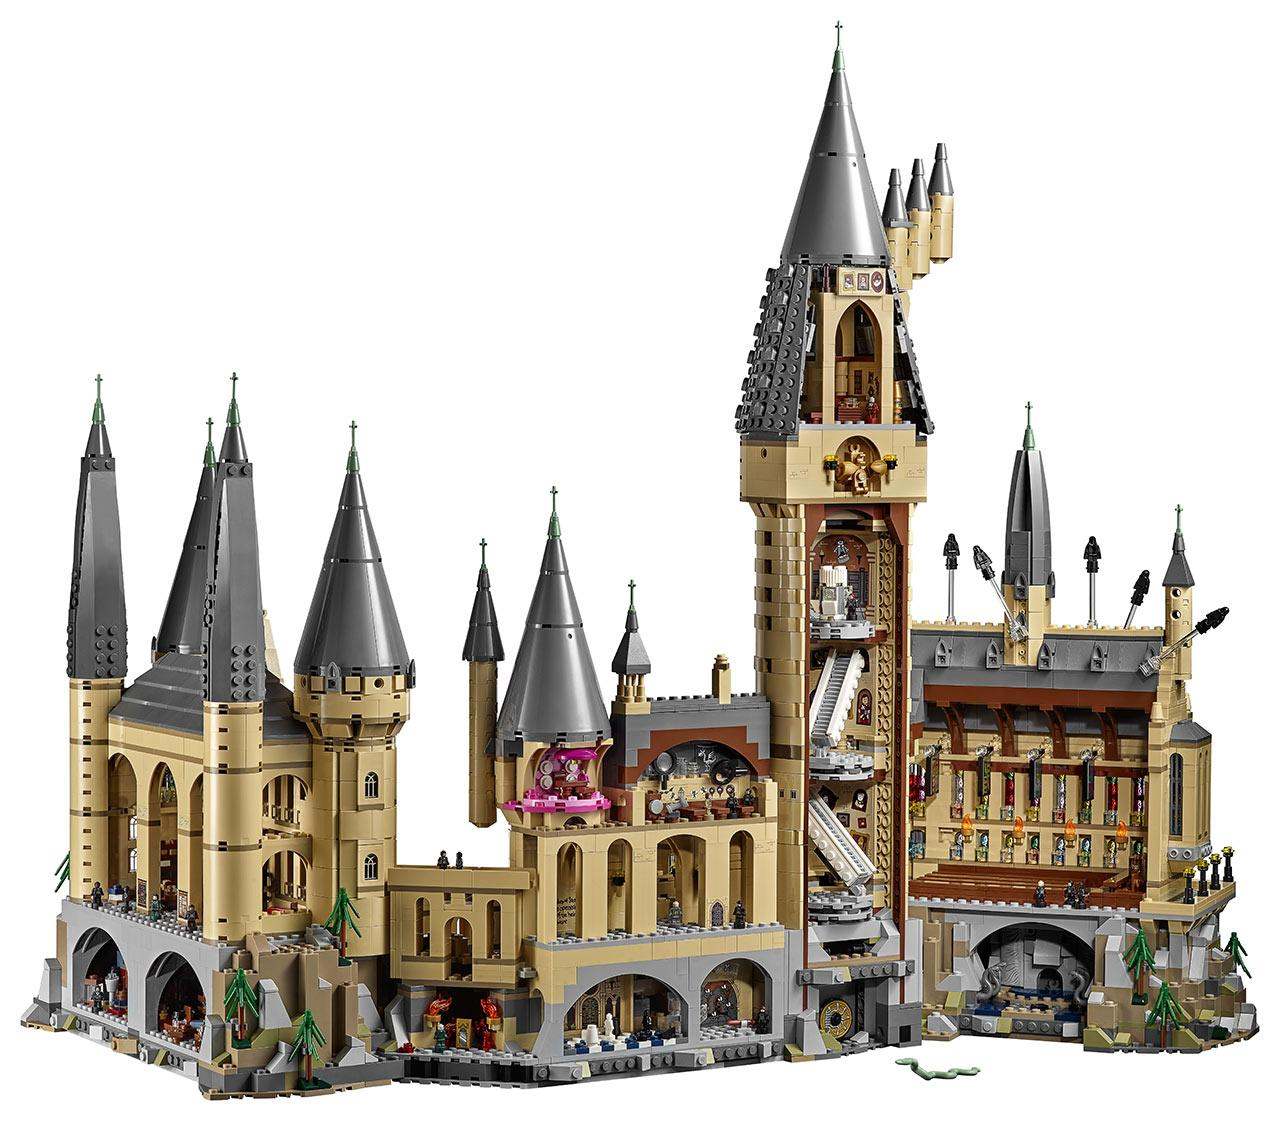 This Giant Lego Hogwarts Set Is A Harry Potter Fans Dream Slashgear